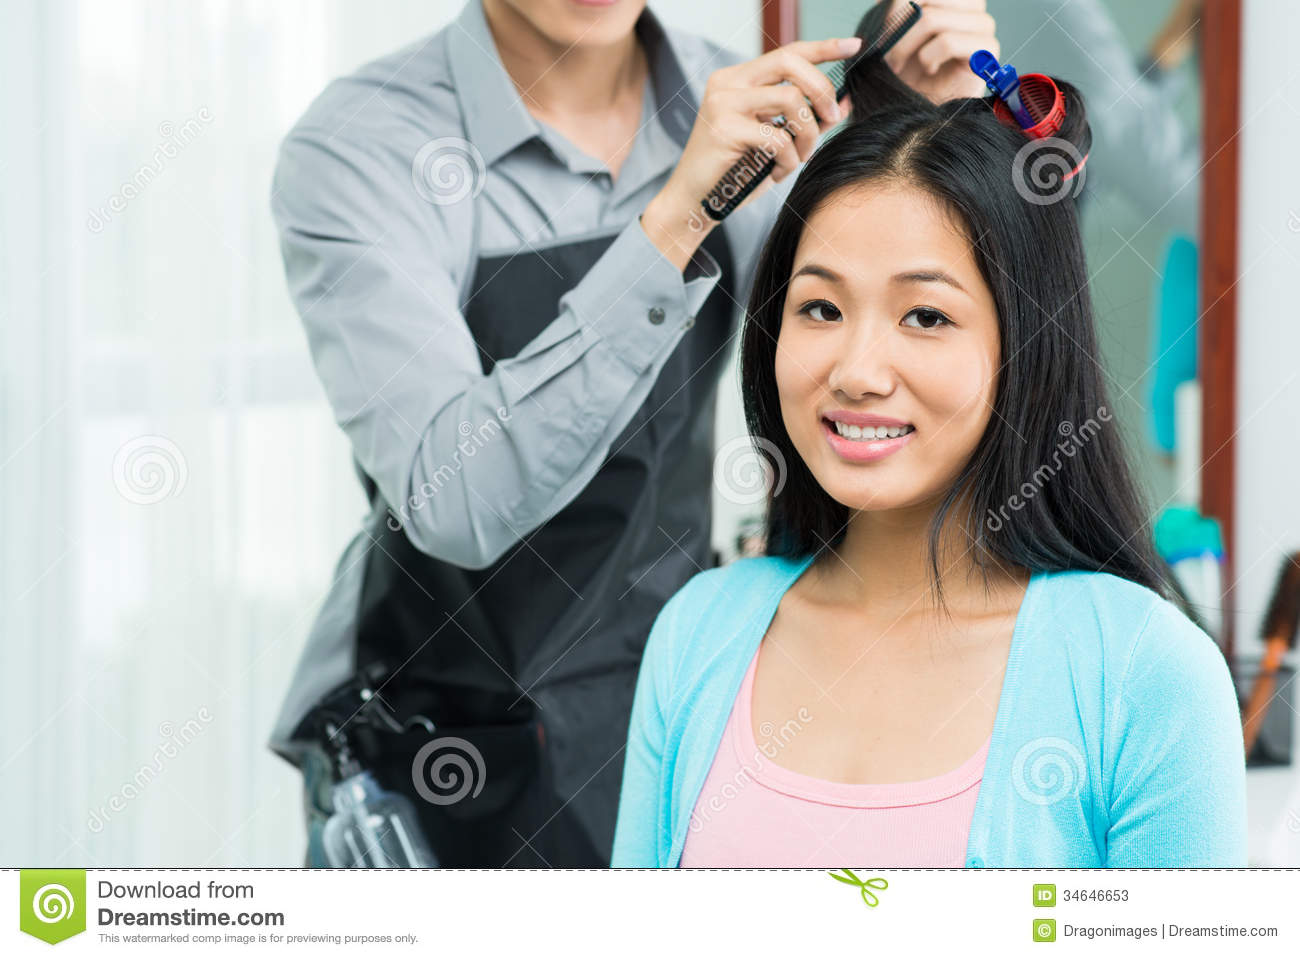 ... of a young women having hair procedure in salon on the foreground